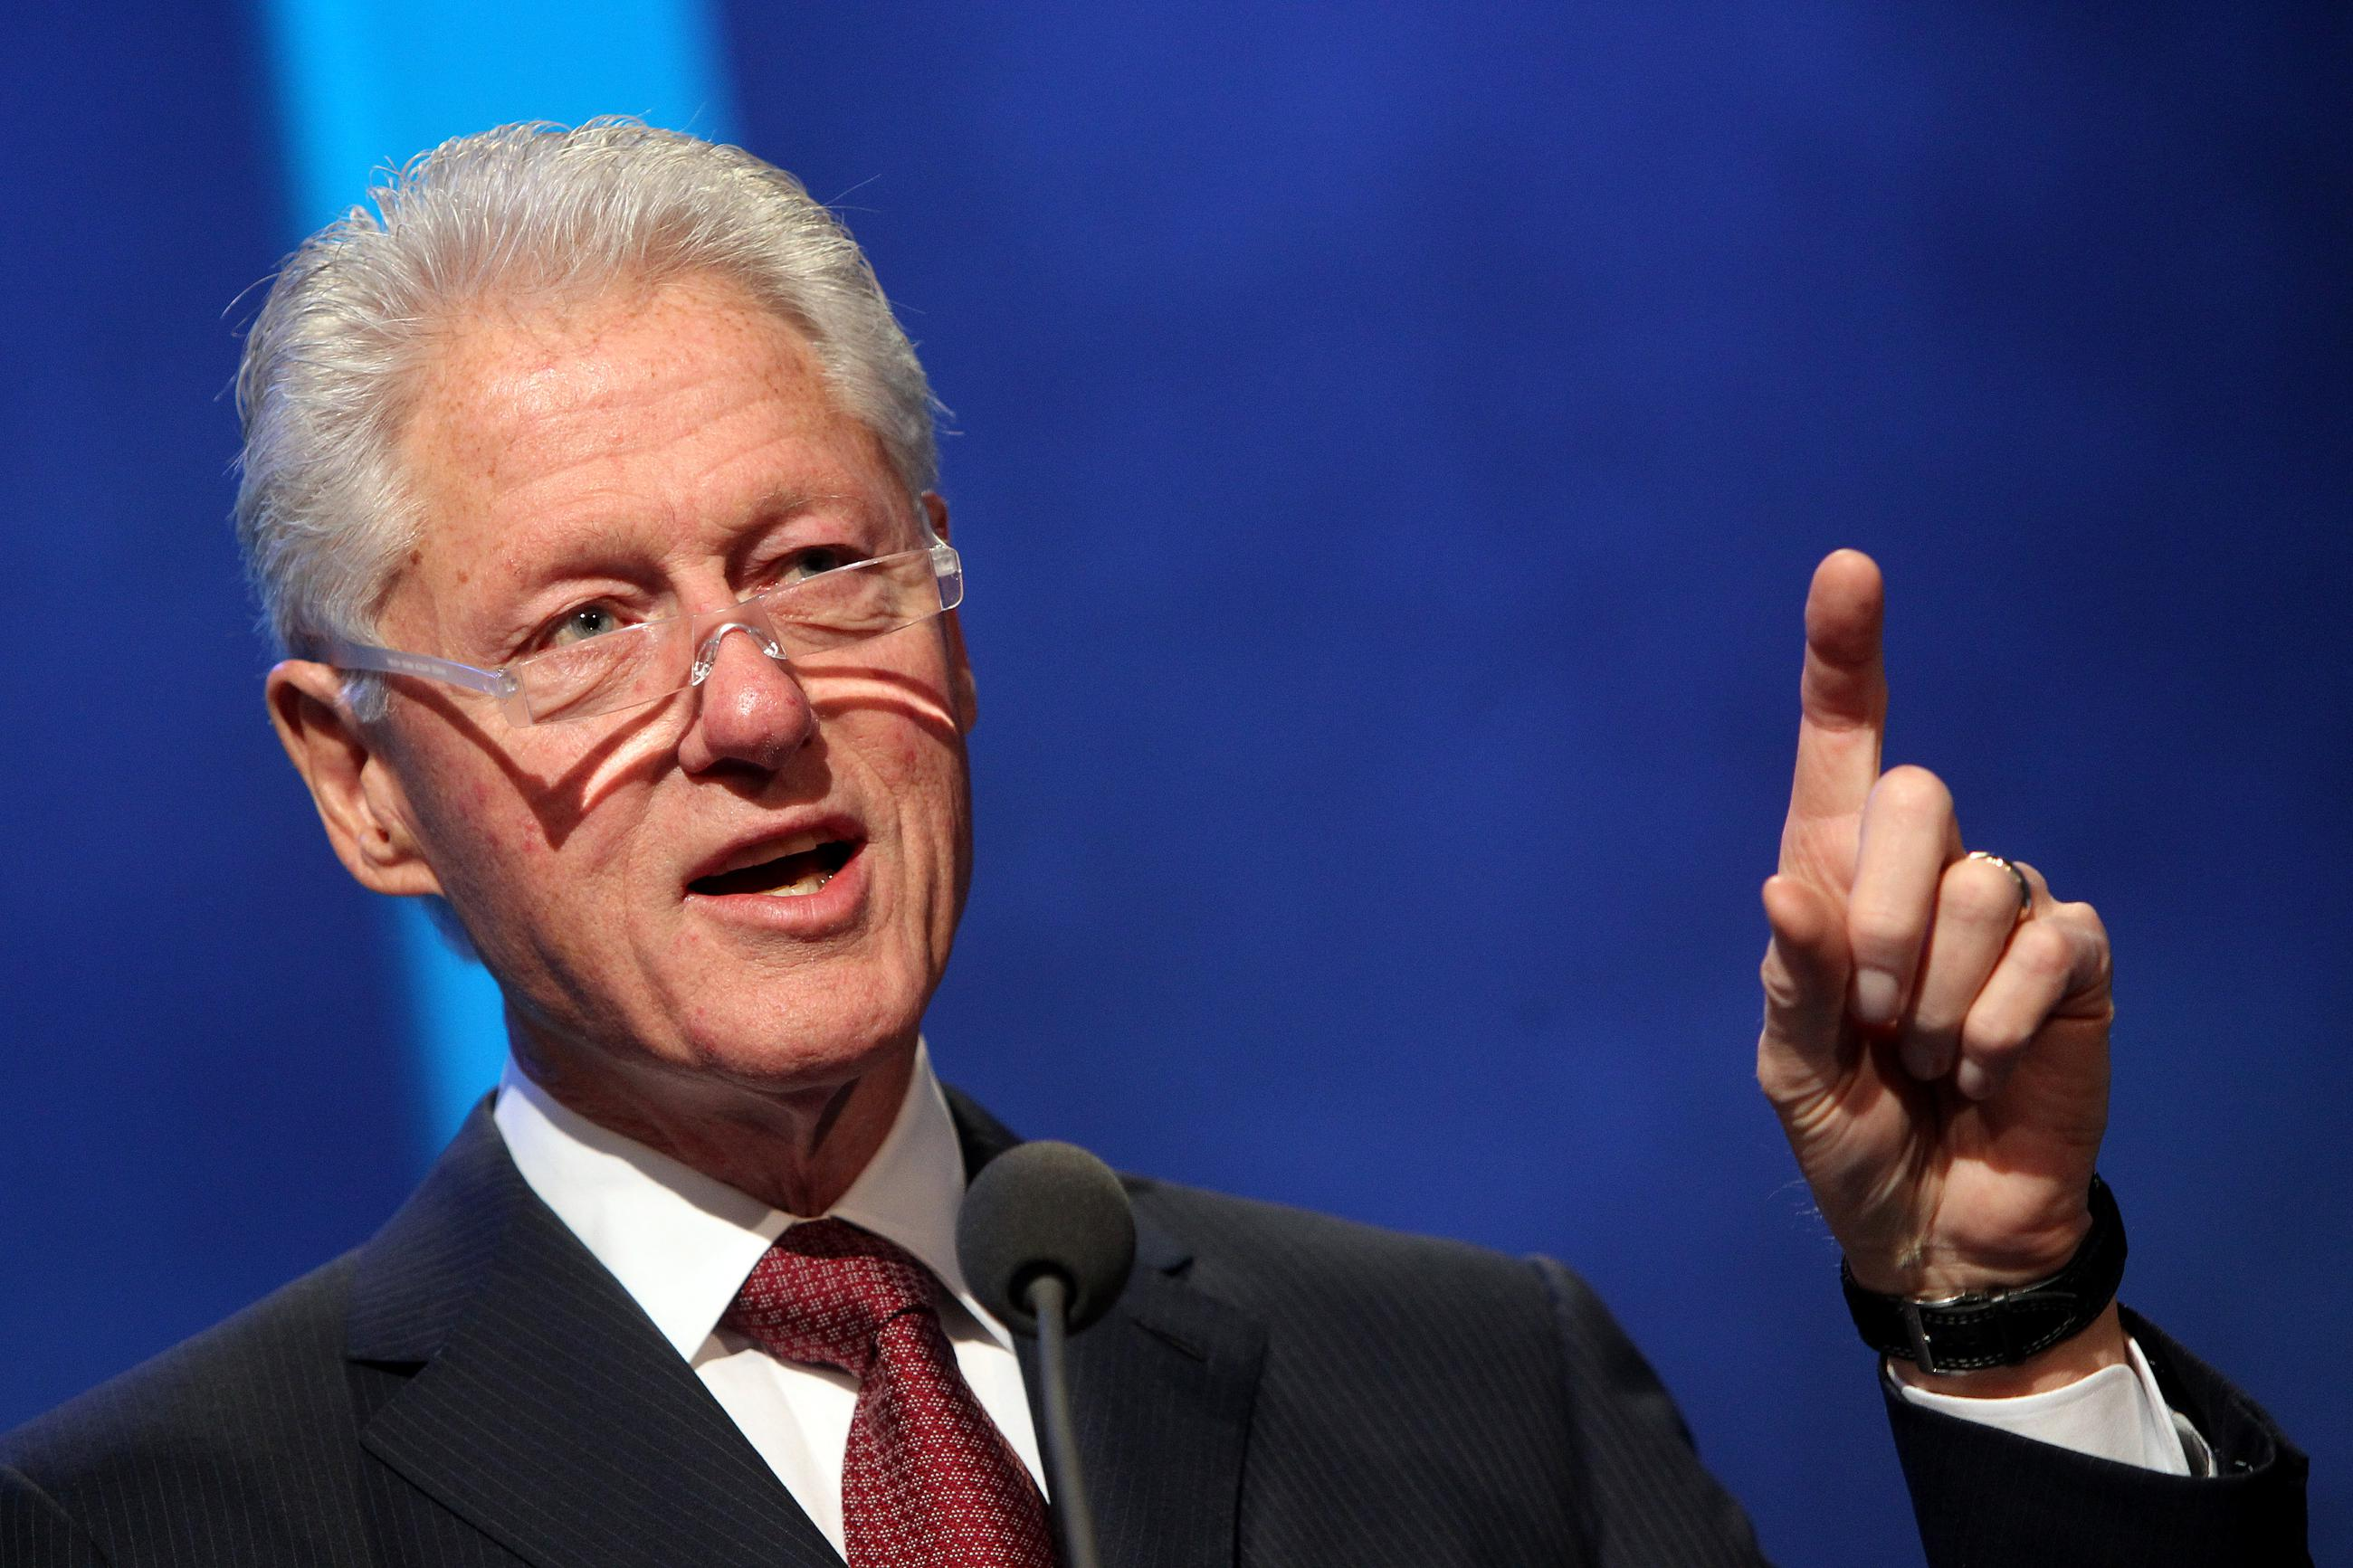 Bill Clinton: 'If I Were President, I Wouldn't Negotiate' Over Funding Government